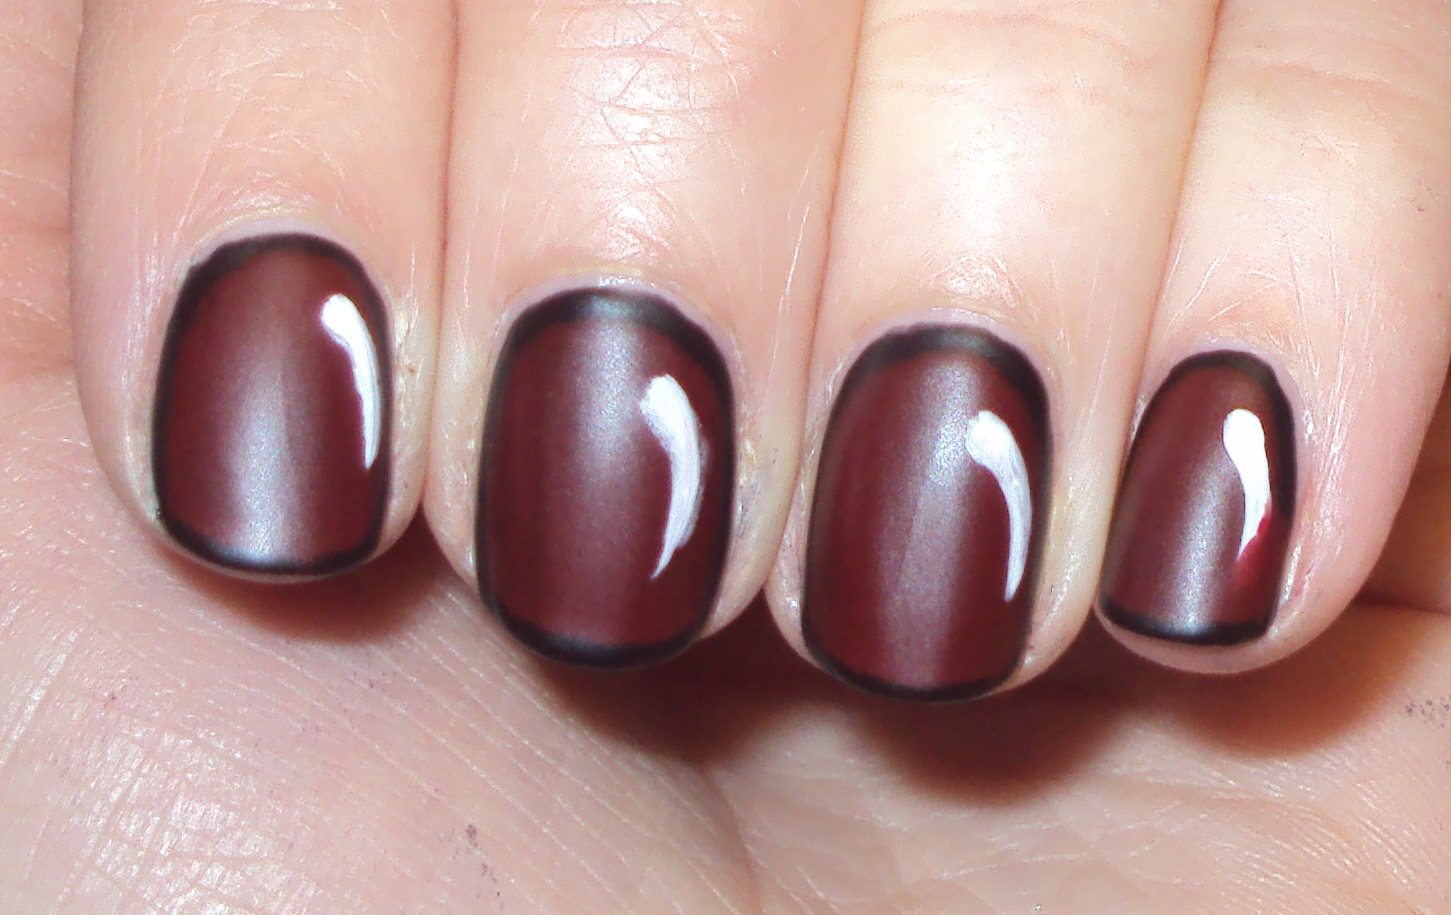 Then Taking A White Nail Art Polish I Painted Swipe To Look Like The Comic Book Light Effect Nails Were Given Matte Top Coat And Whammo